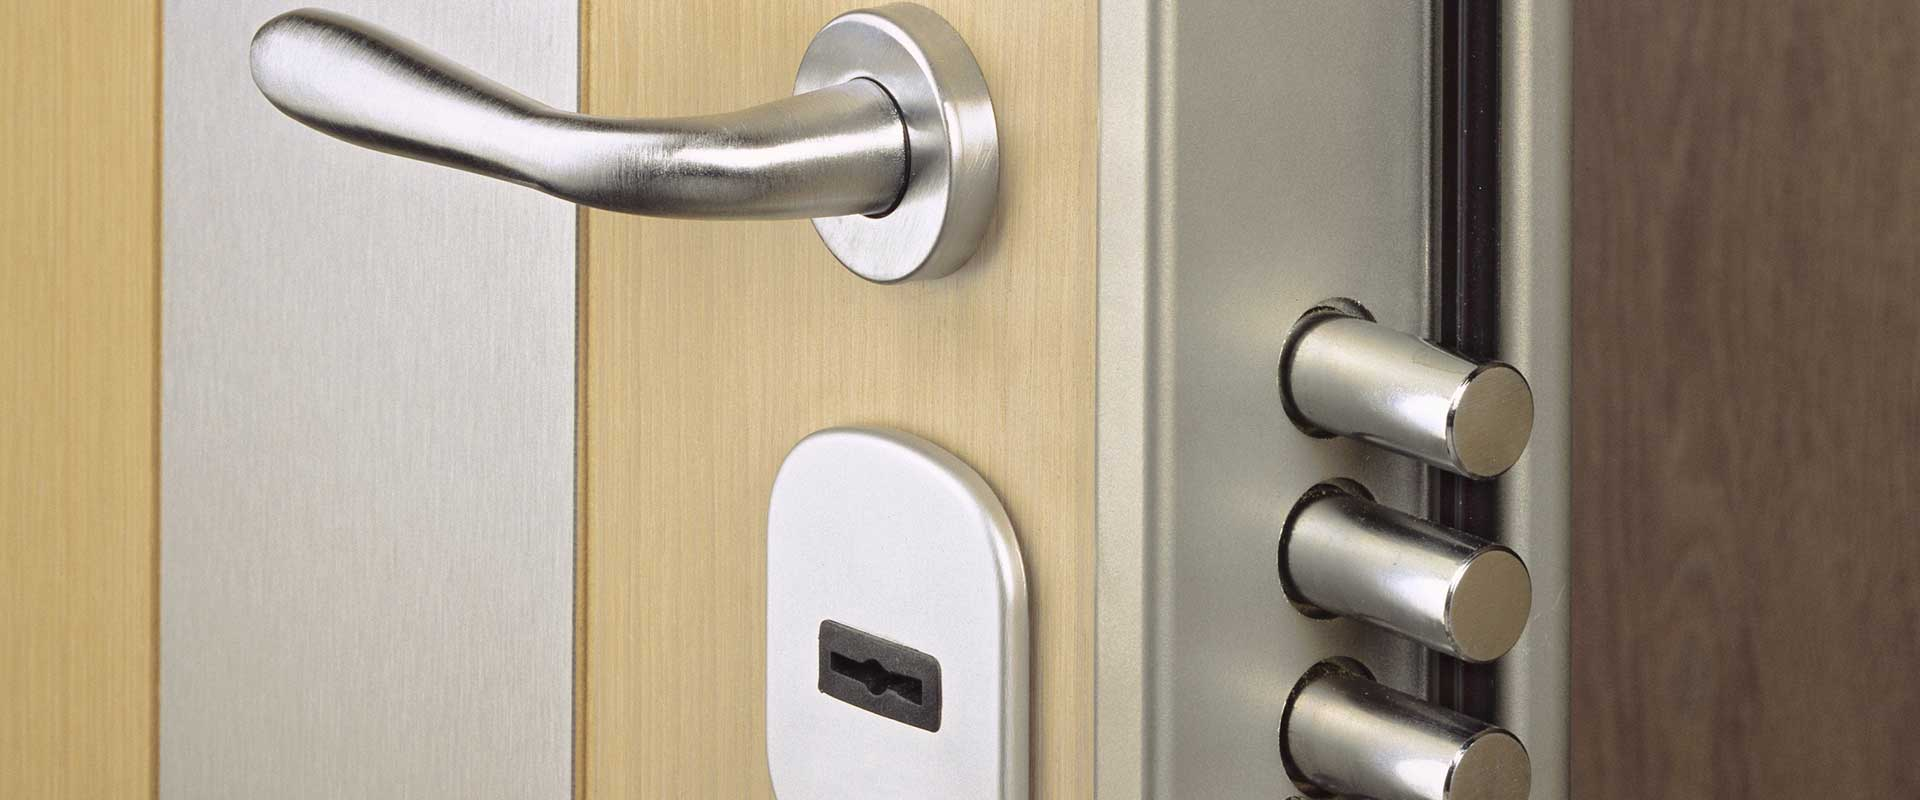 Gallery Commercial Door Hardware